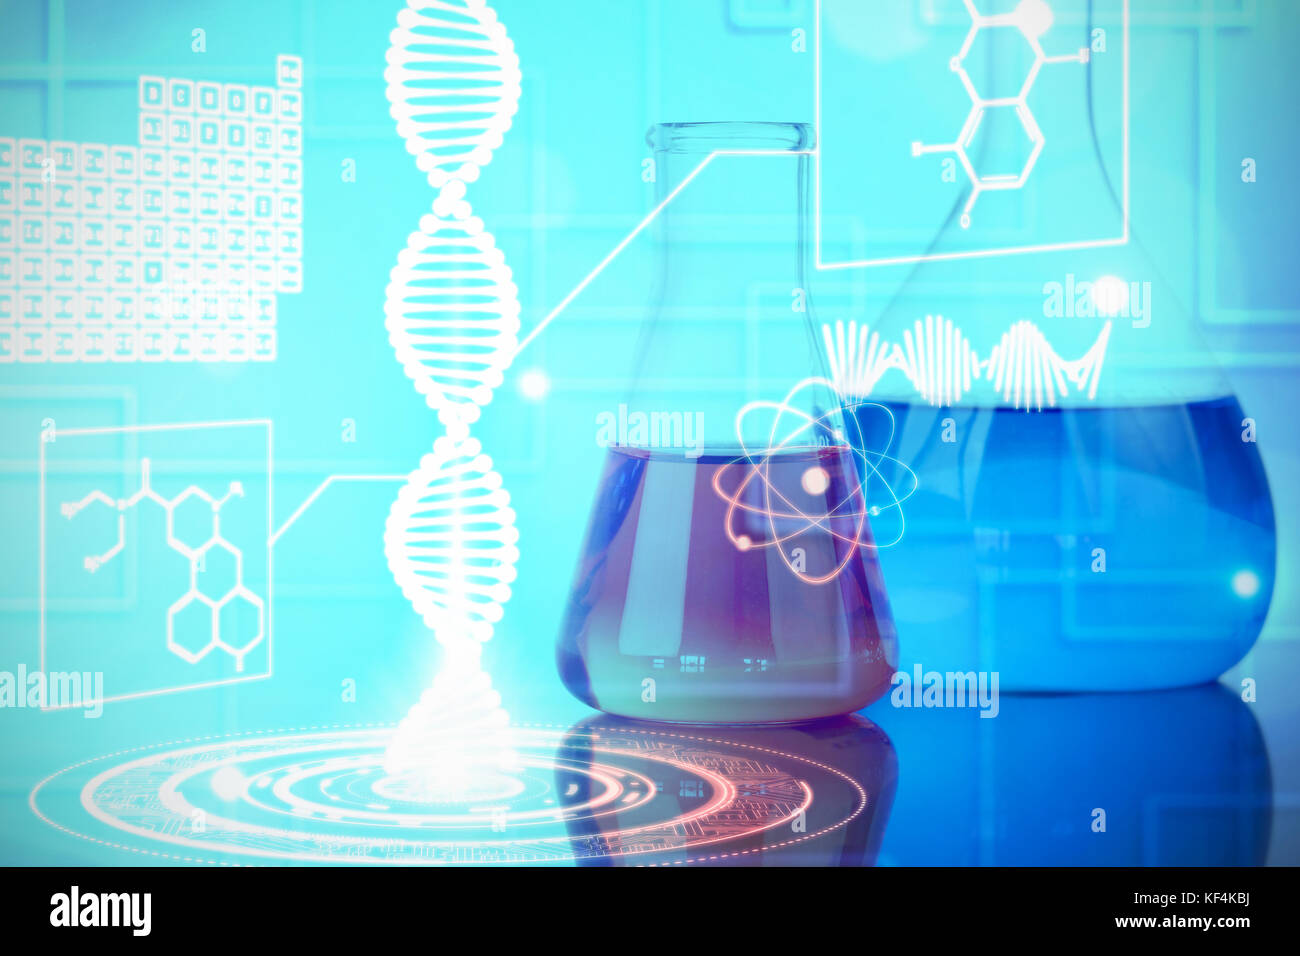 Blue and red beakers against composite image of dna helix interface - Stock Image